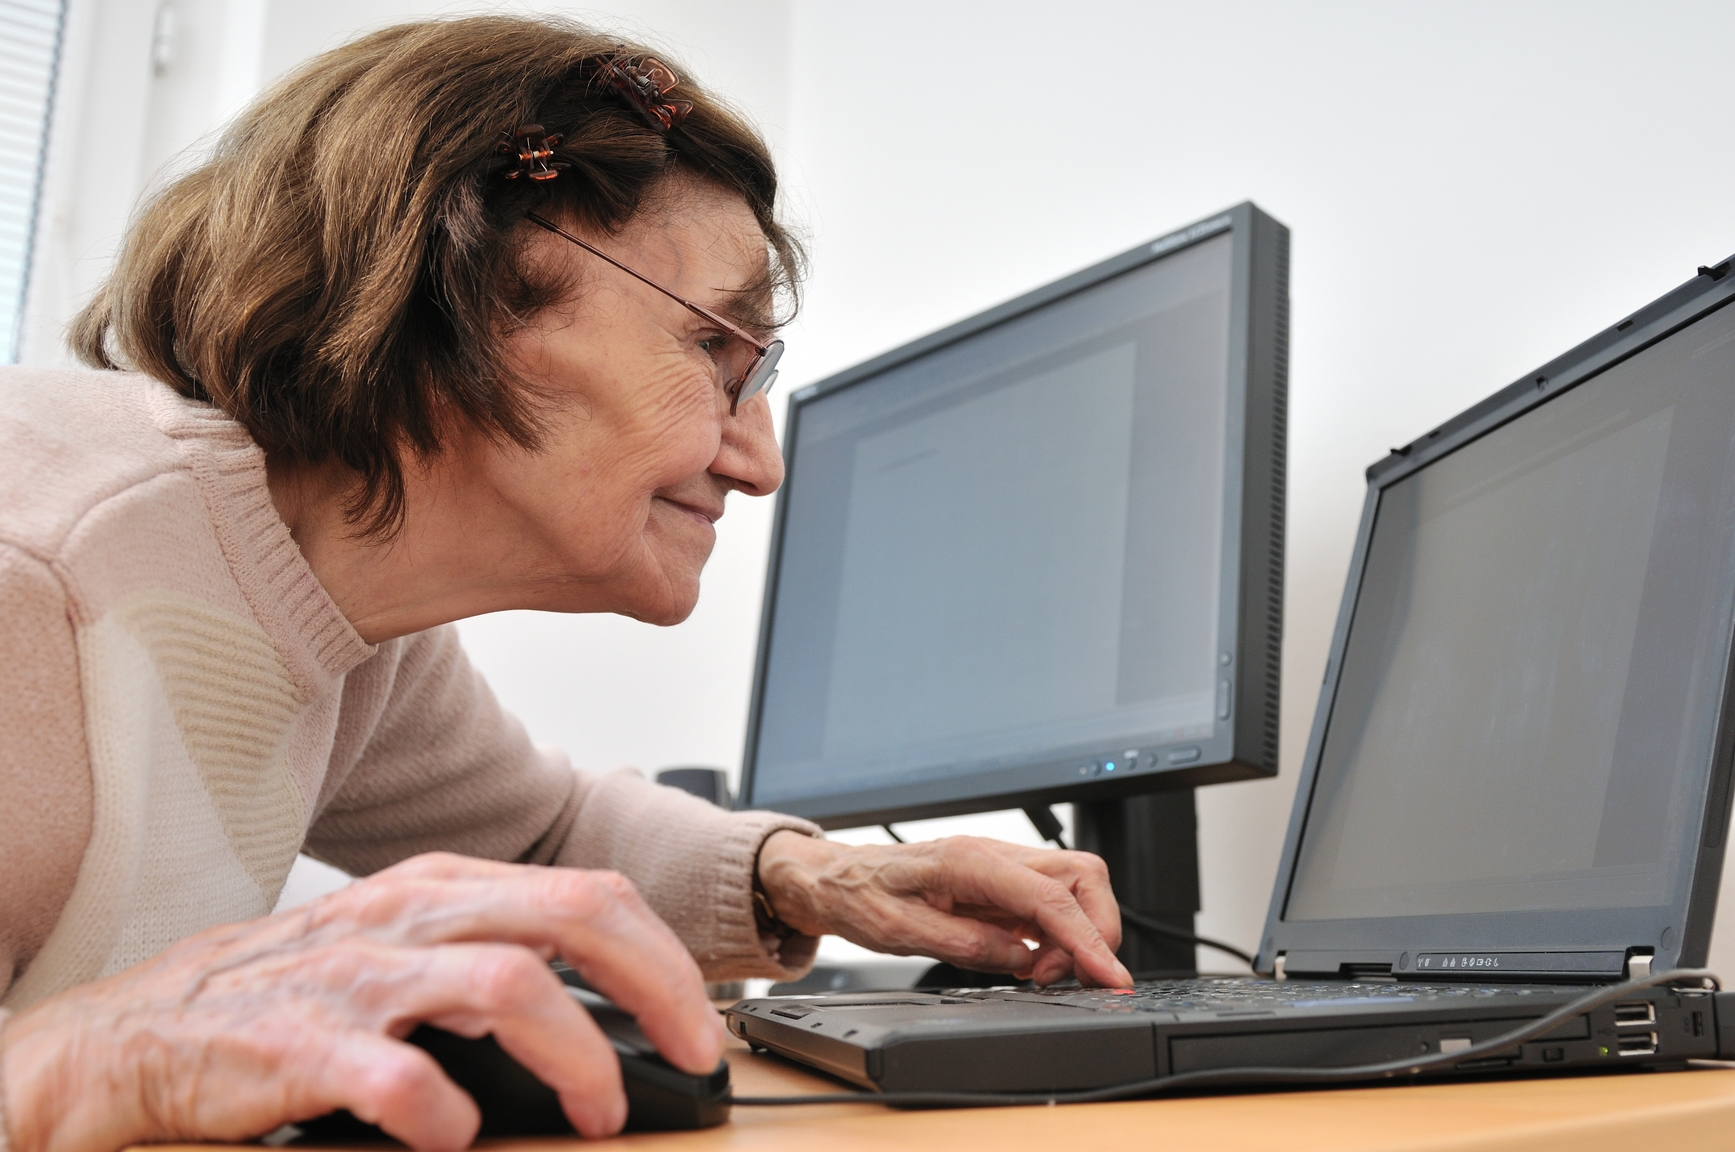 80-something senior woman working with laptop, another computer in the background